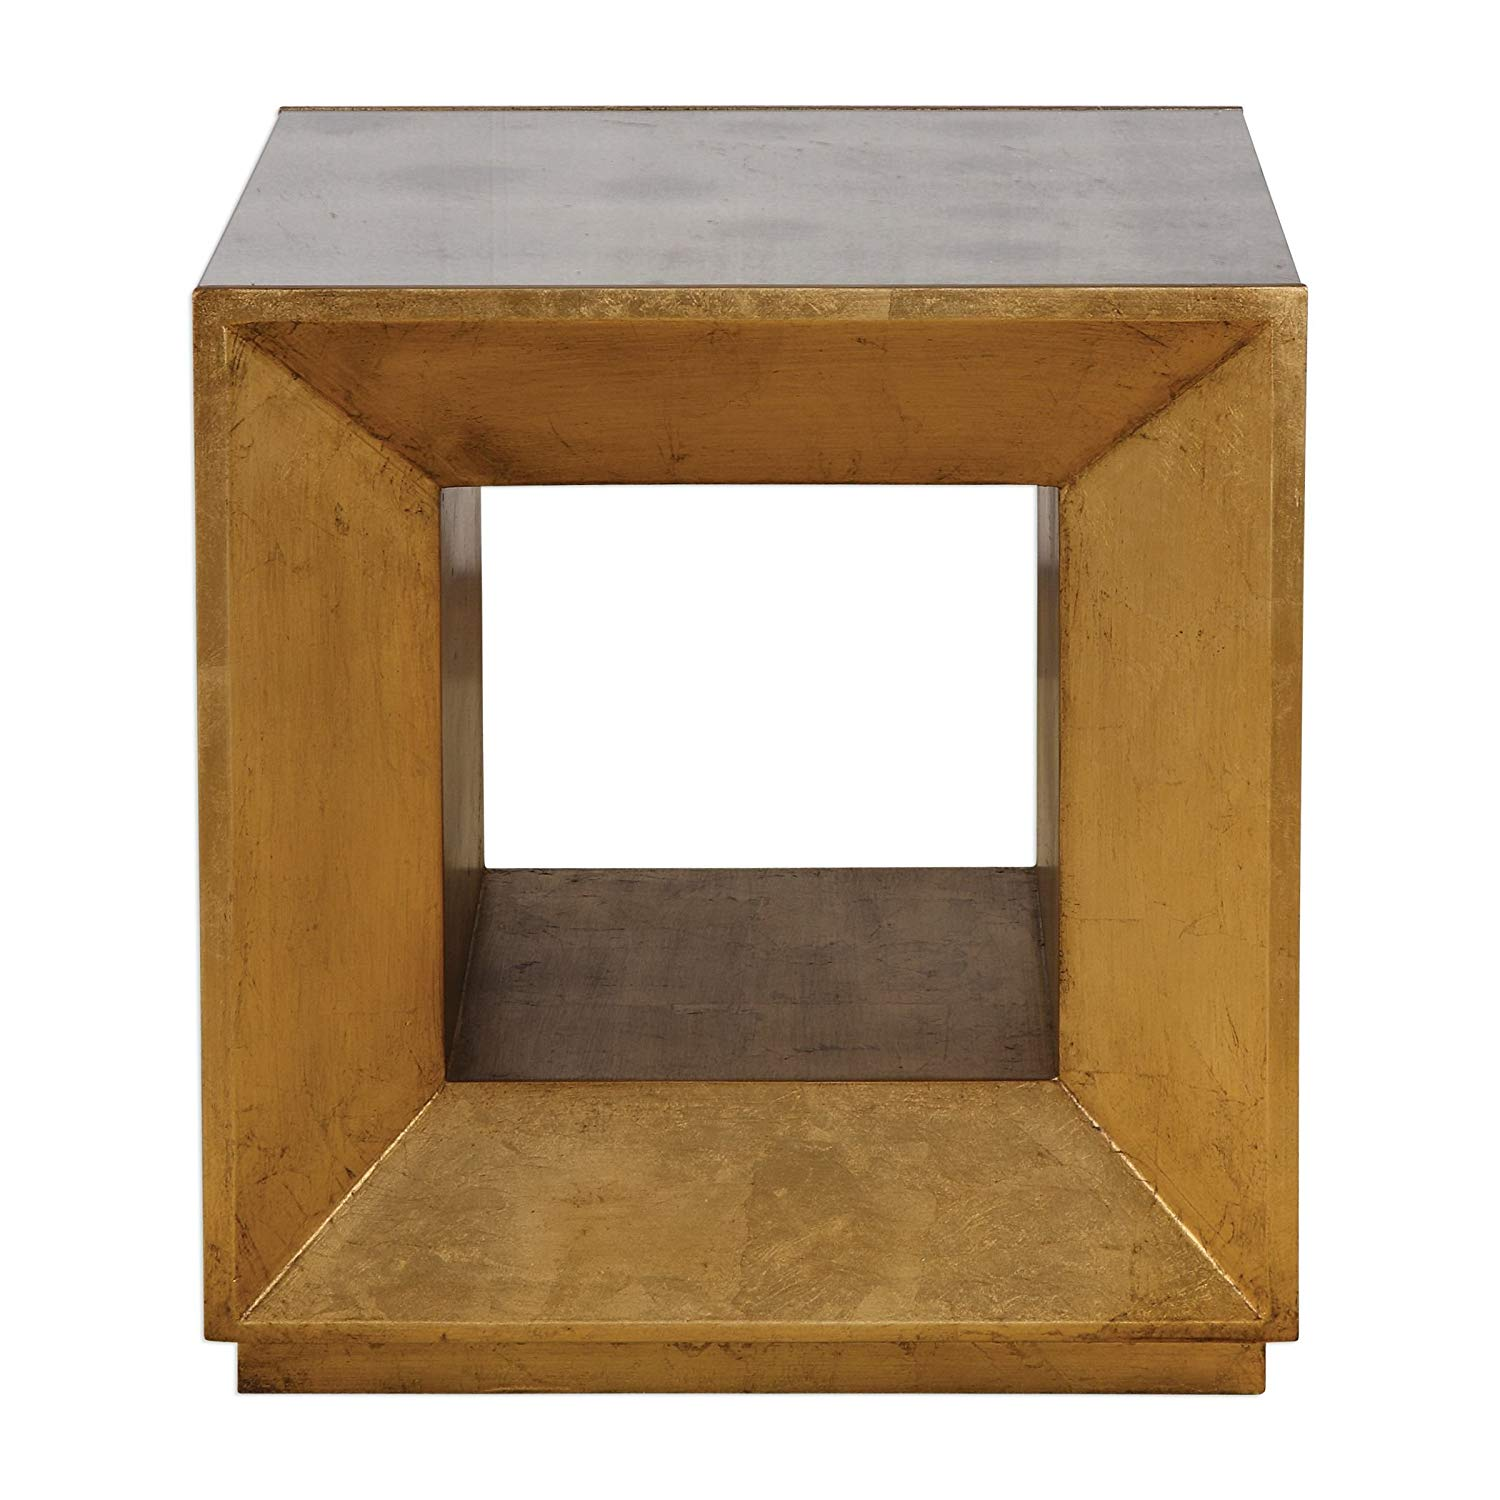 gold metallic mirrored bunching cube table end accent wood square open modern health personal care concrete garden narrow oak console furniture tucson target threshold teal baby